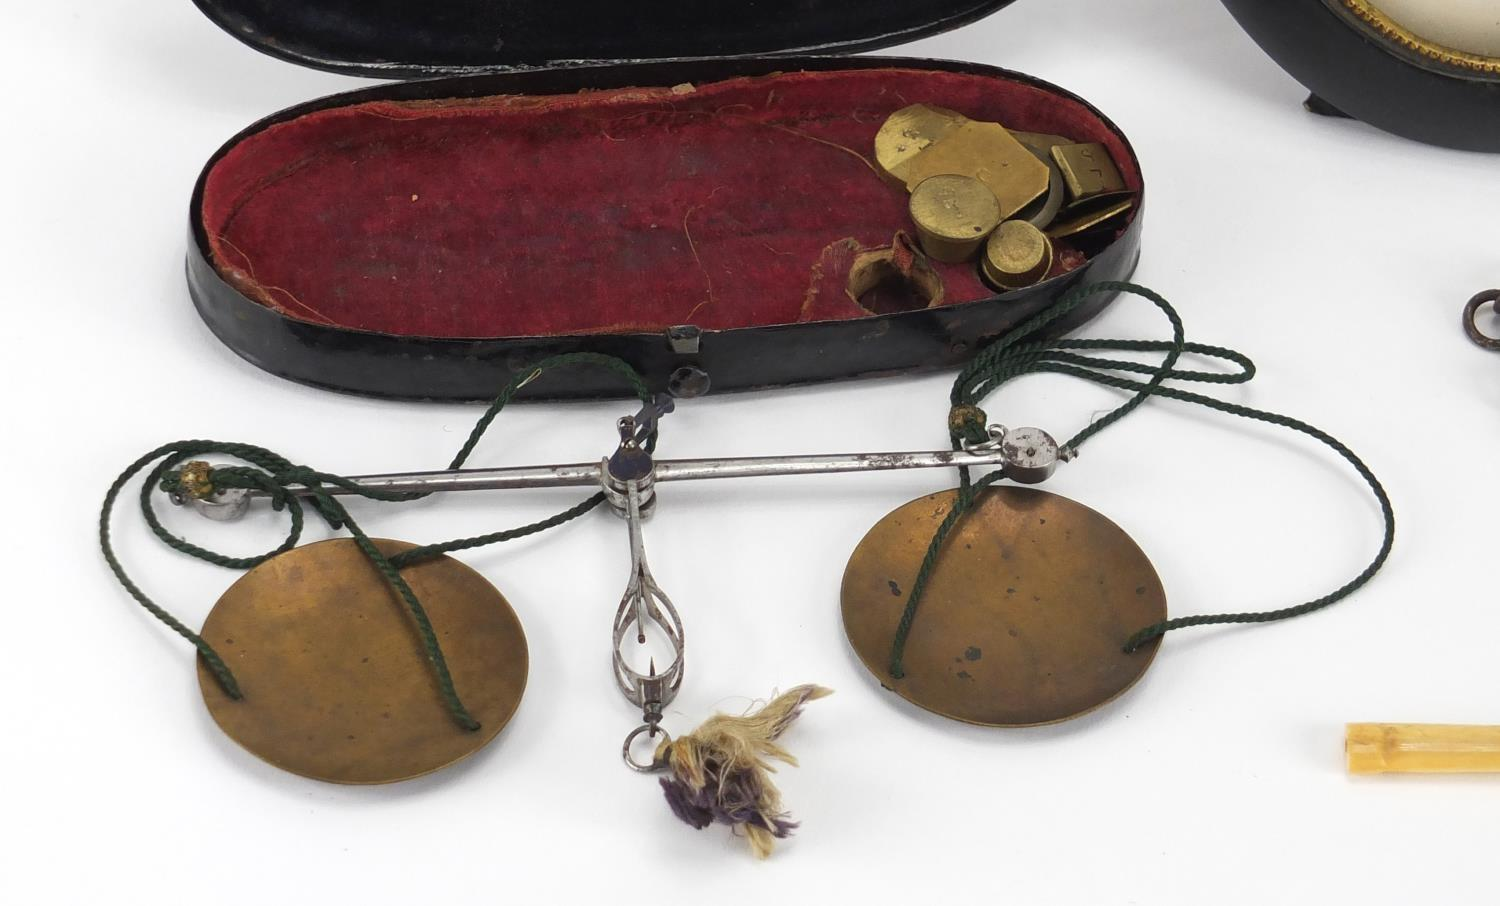 Lot 33 - Antique and later objects including a blonde tortoiseshell spectacle case, set of postage scales